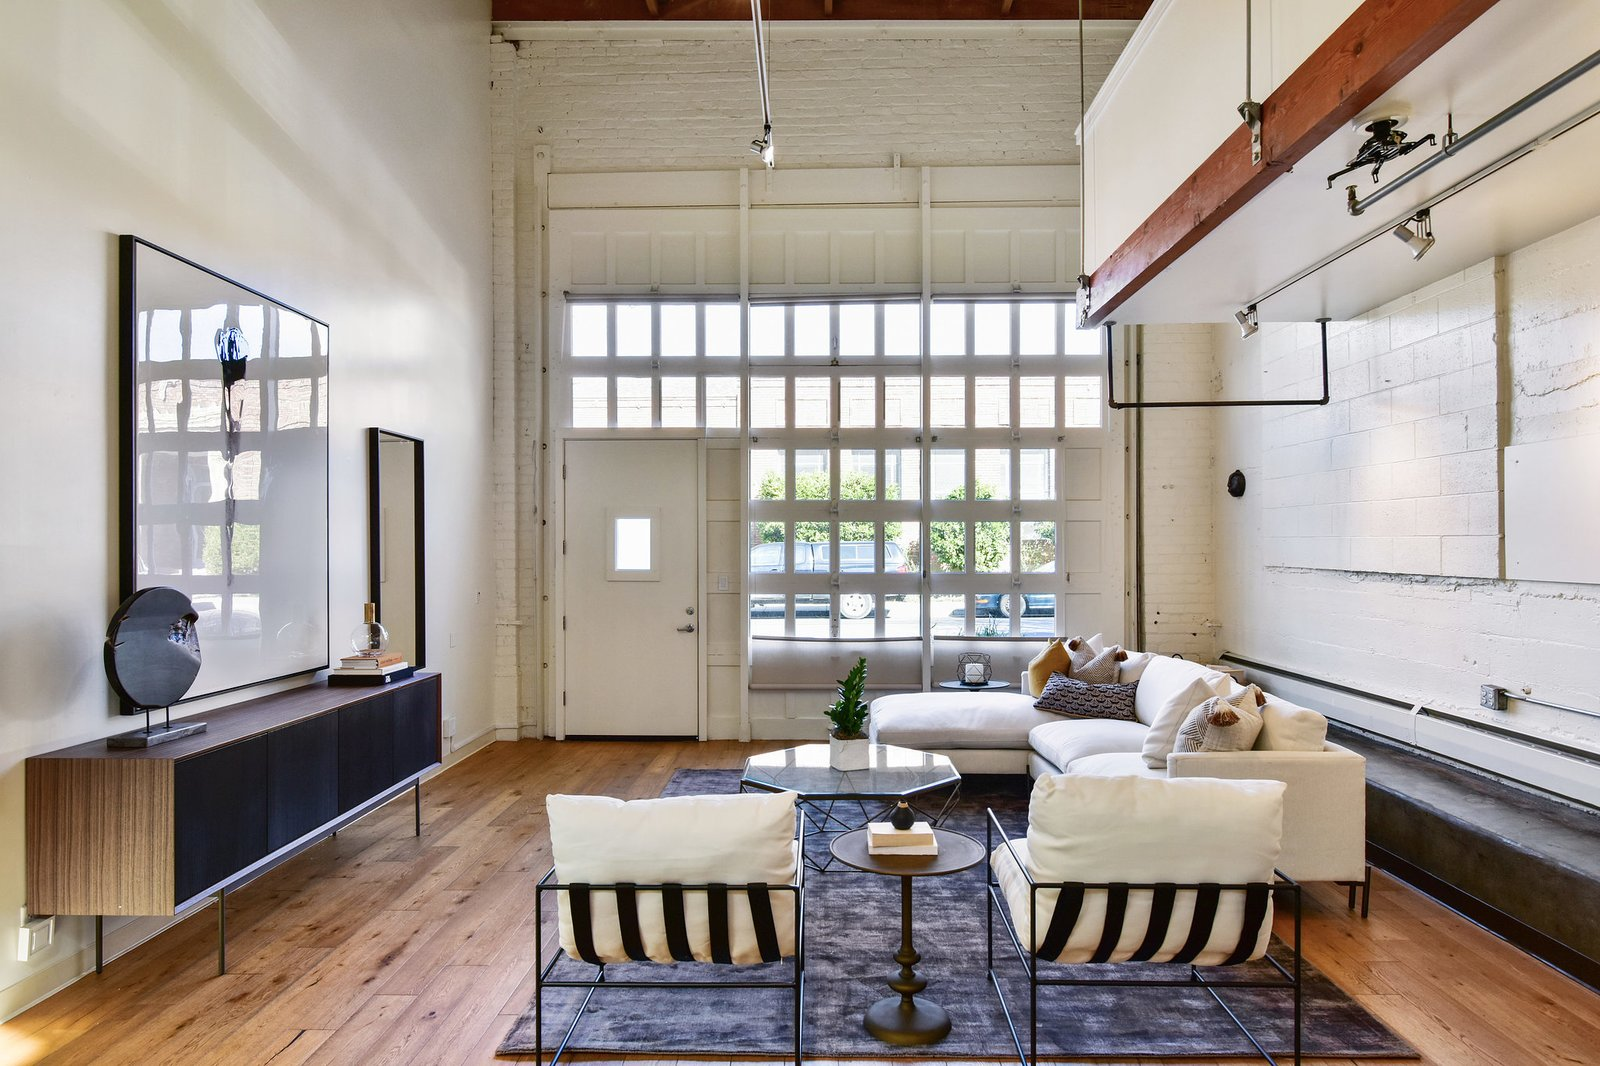 Glass panes on the old garage door bring in natural light. The deep, linear floor plan runs the length of a bay in the old warehouse.  Photo 2 of 9 in A Converted Warehouse Loft in the San Francisco Bay Area Seeks $950K